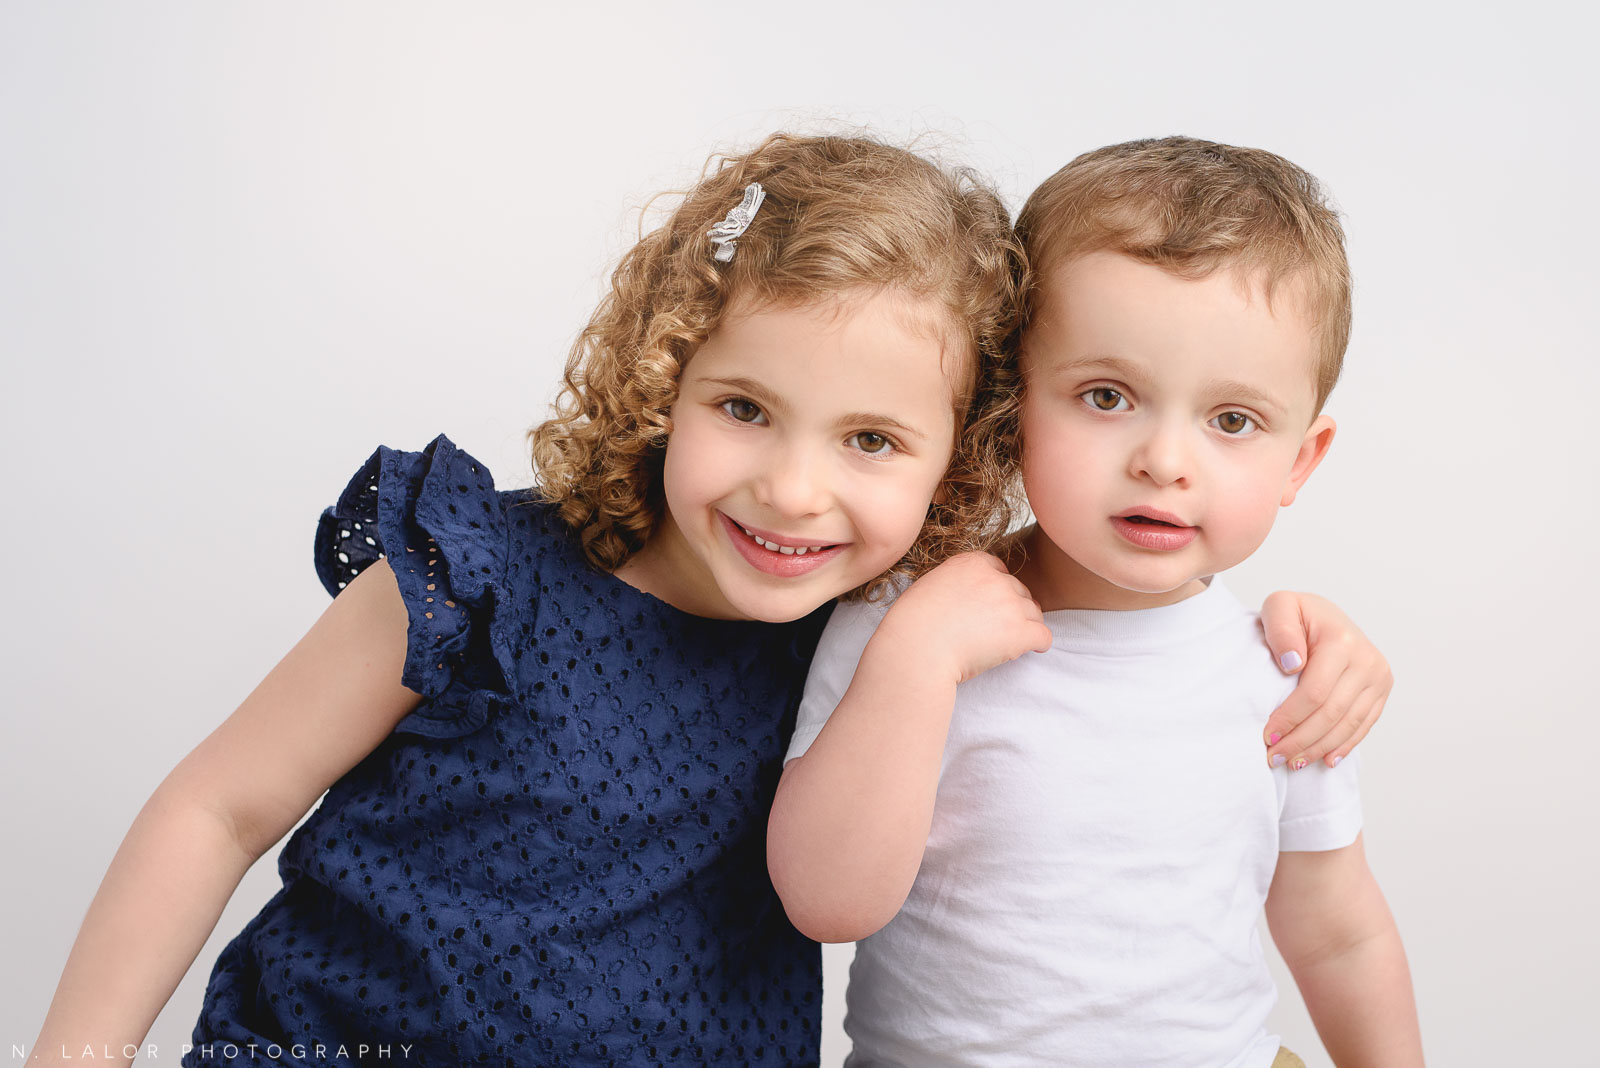 Siblings. Studio family photo session with N. Lalor Photography in Greenwich, Connecticut.